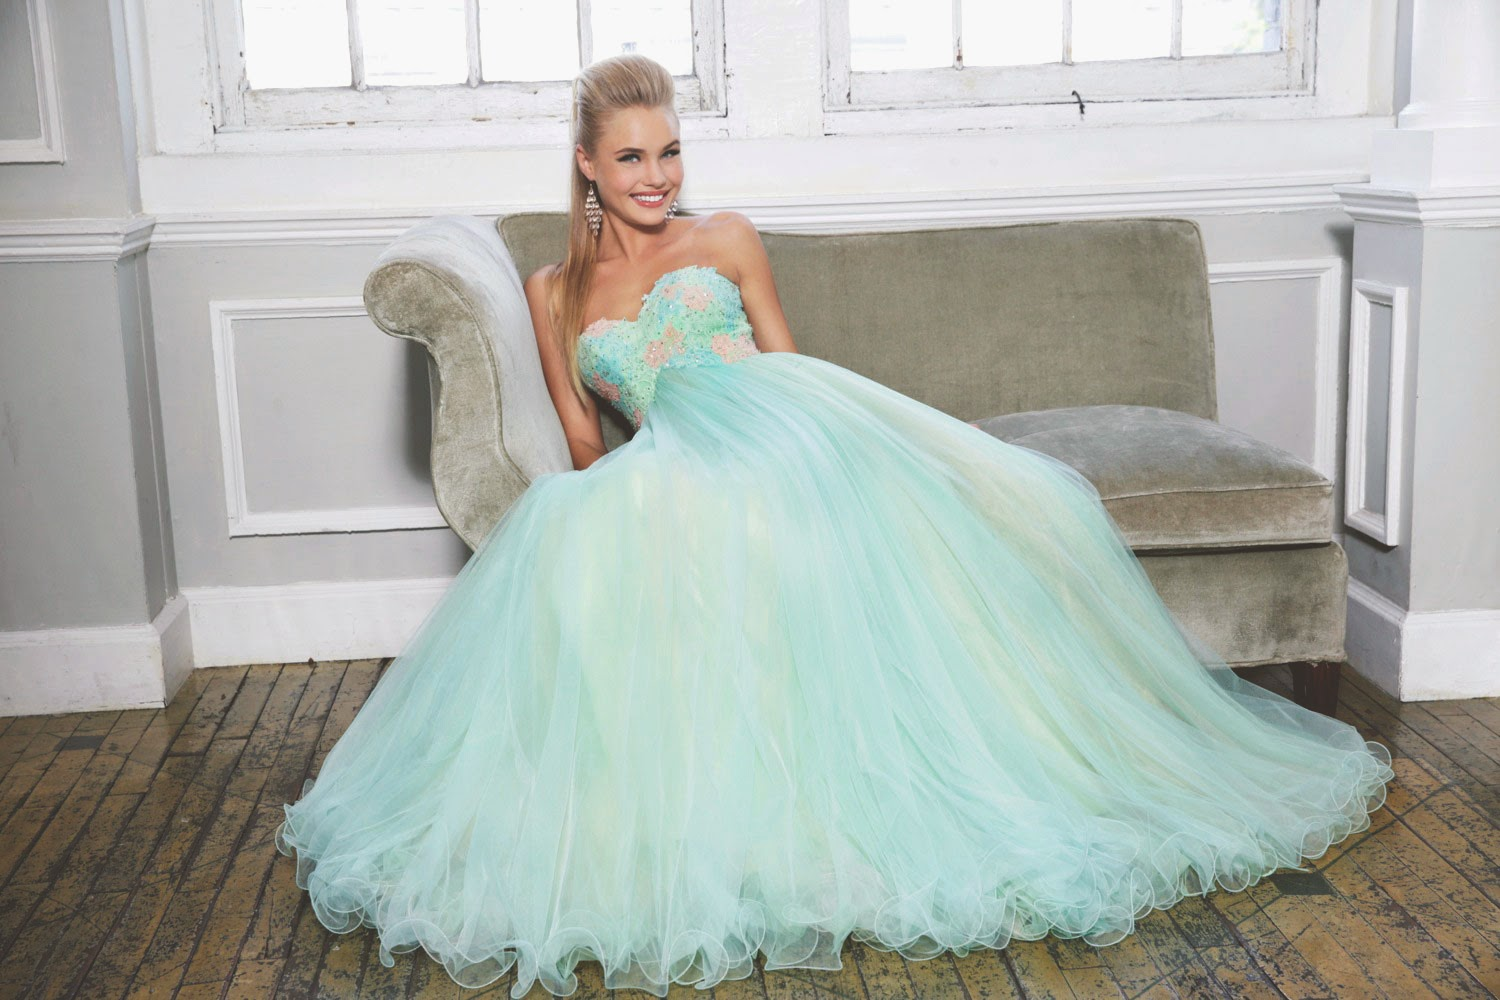 http://www.sherrylondon.co.uk/nectarean-aline-appliques-tulle-sweetheart-sweepbrush-train-prom-dresses-p-336.html#.VR6wMo7D7kd